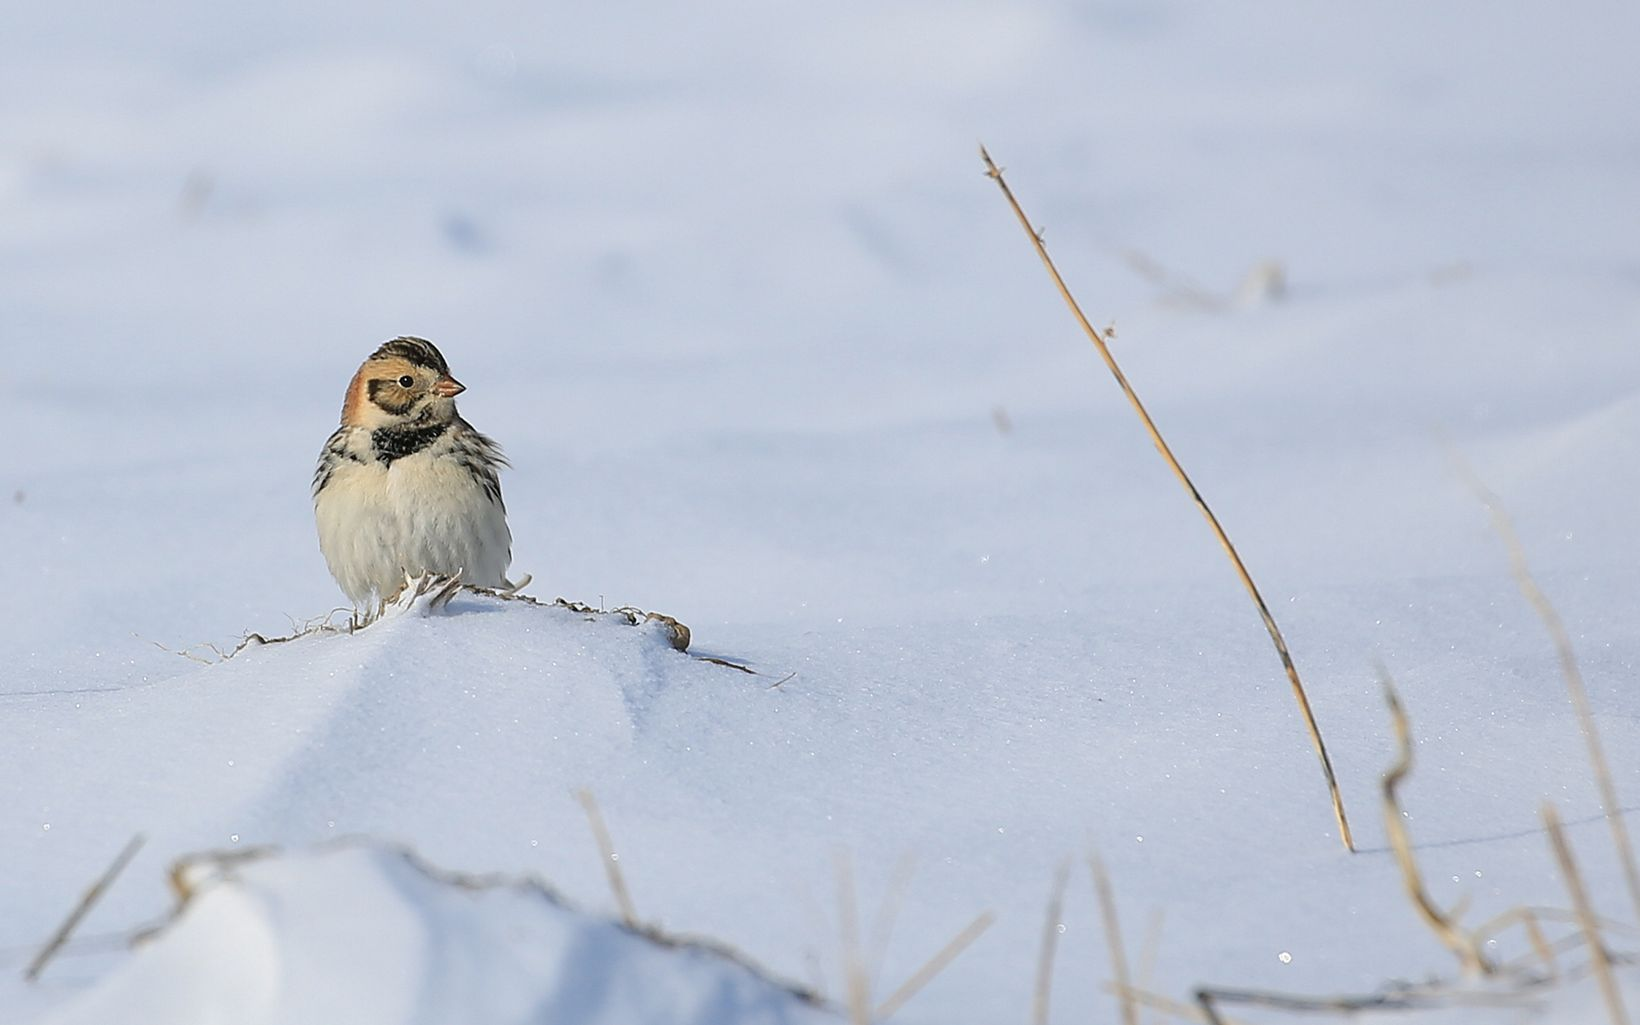 A small bird rests in a snowy landscape.